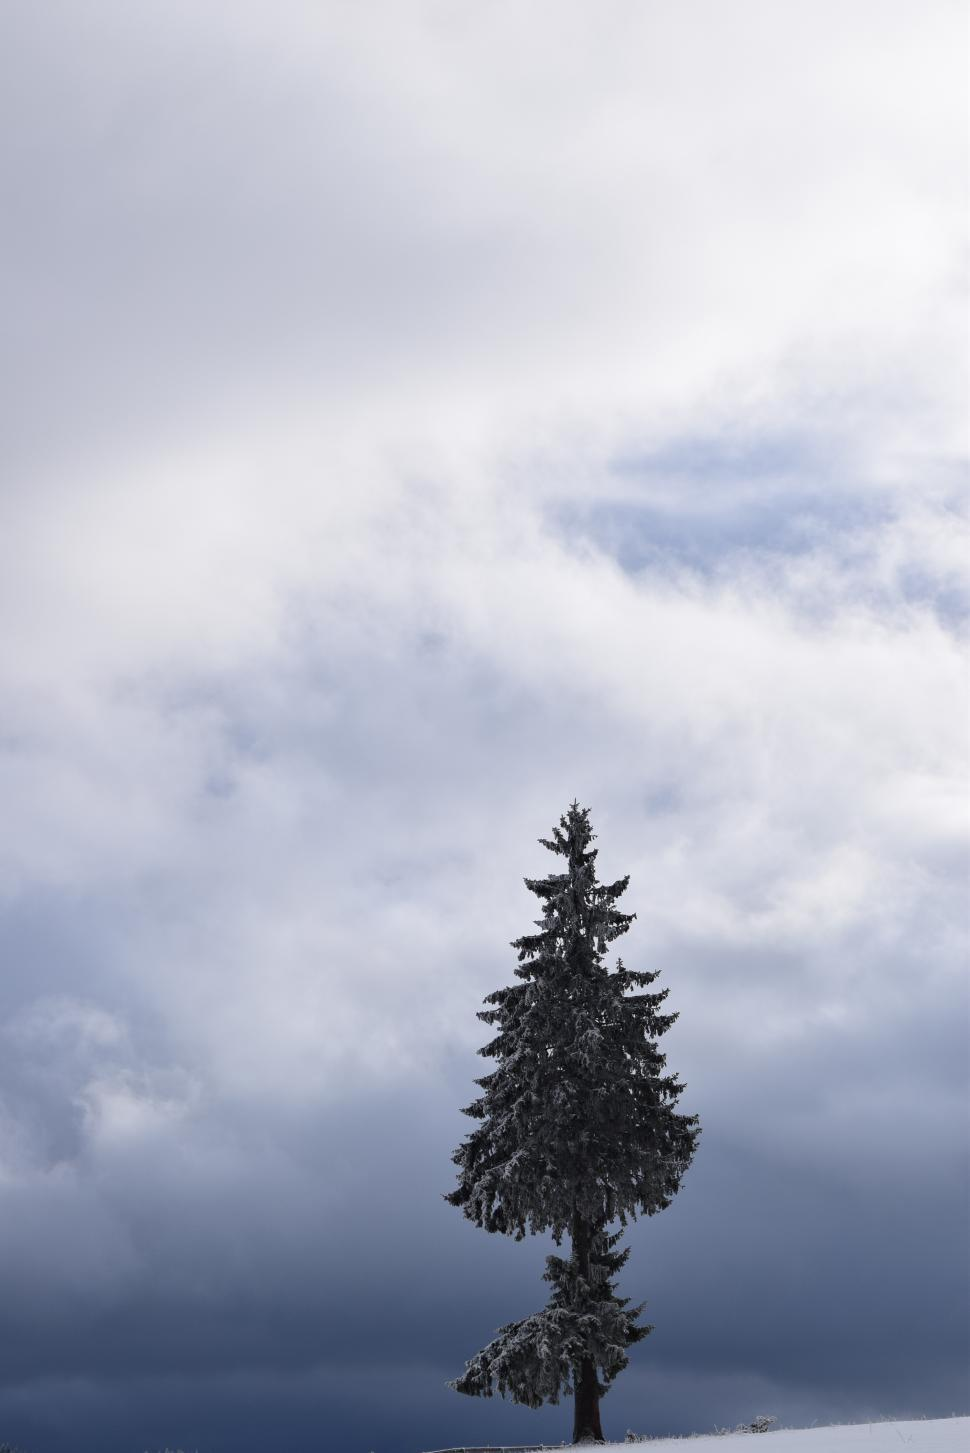 Download Free Stock HD Photo of Single tree covered with snow  Online